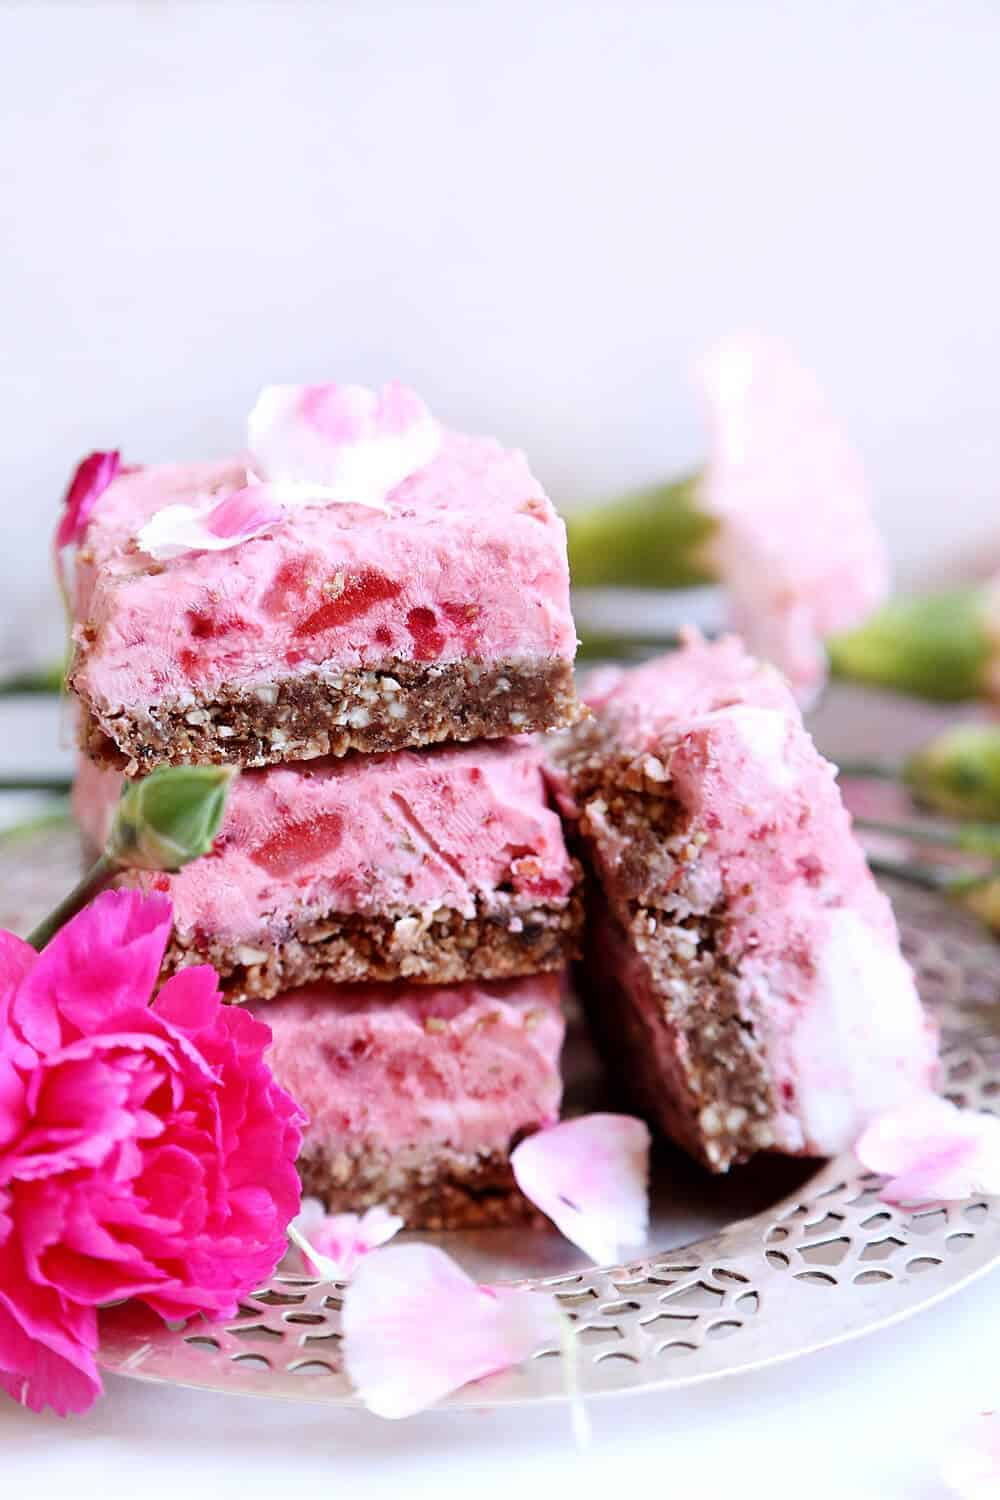 Strawberry and Raspberry Ice Cream Bars